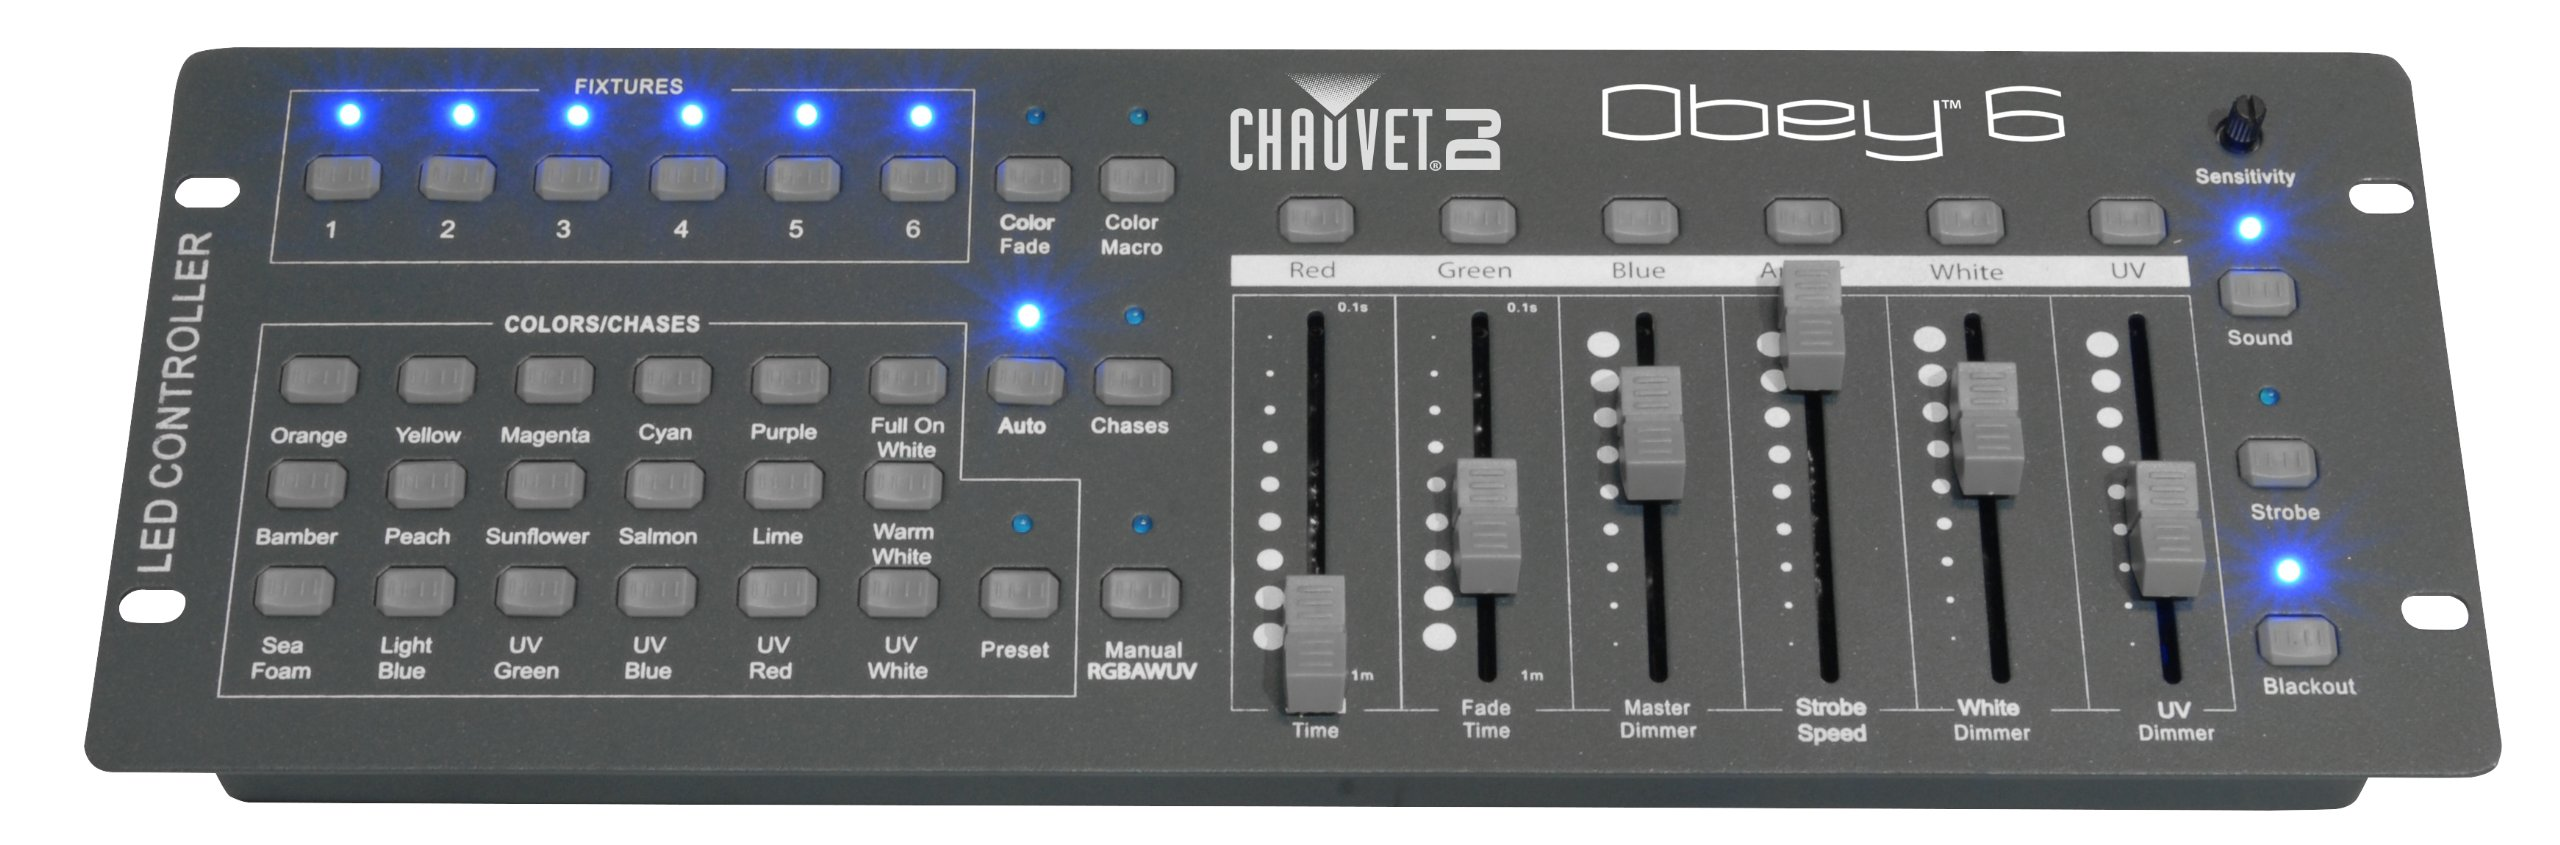 CHAUVET DJ Obey 6 Compact Universal LED Controller | LED Light Controllers